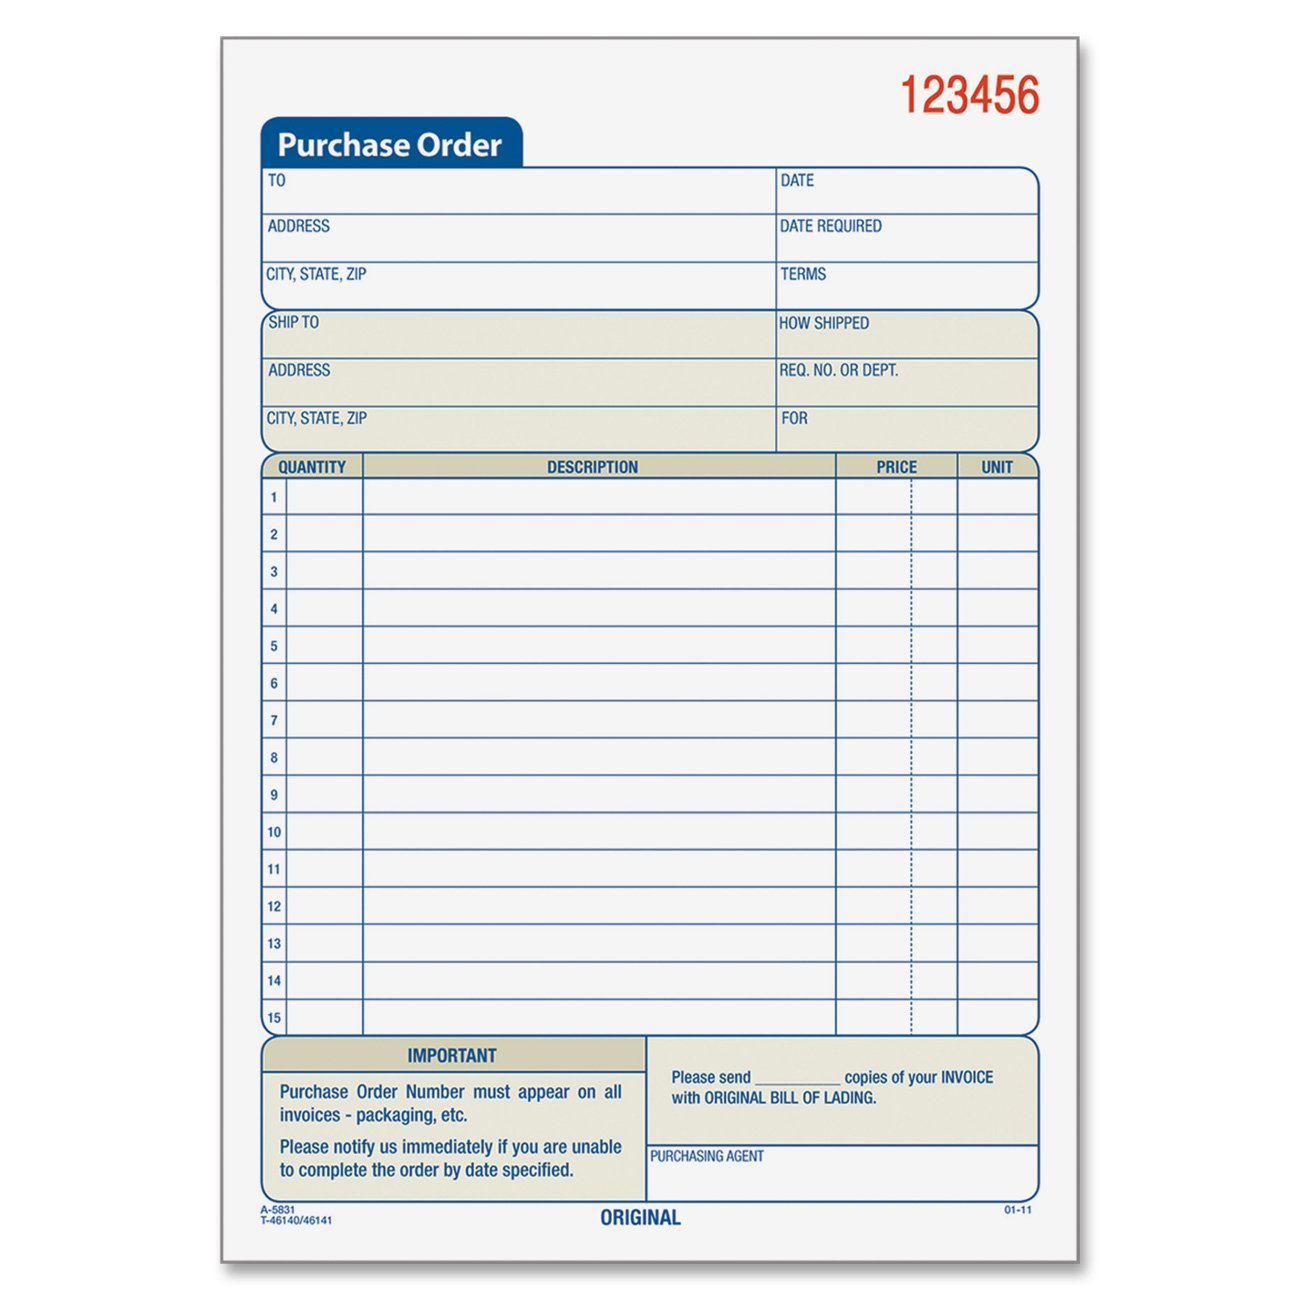 Amazon.com : Adams Purchase Order Book, 5.56 X 8.44 Inch, 3 Part,  Carbonless, 50 Sets, White, Canary, Pink (TC5831) : Blank Purchase Order  Forms : Office ...  Local Purchase Order Form